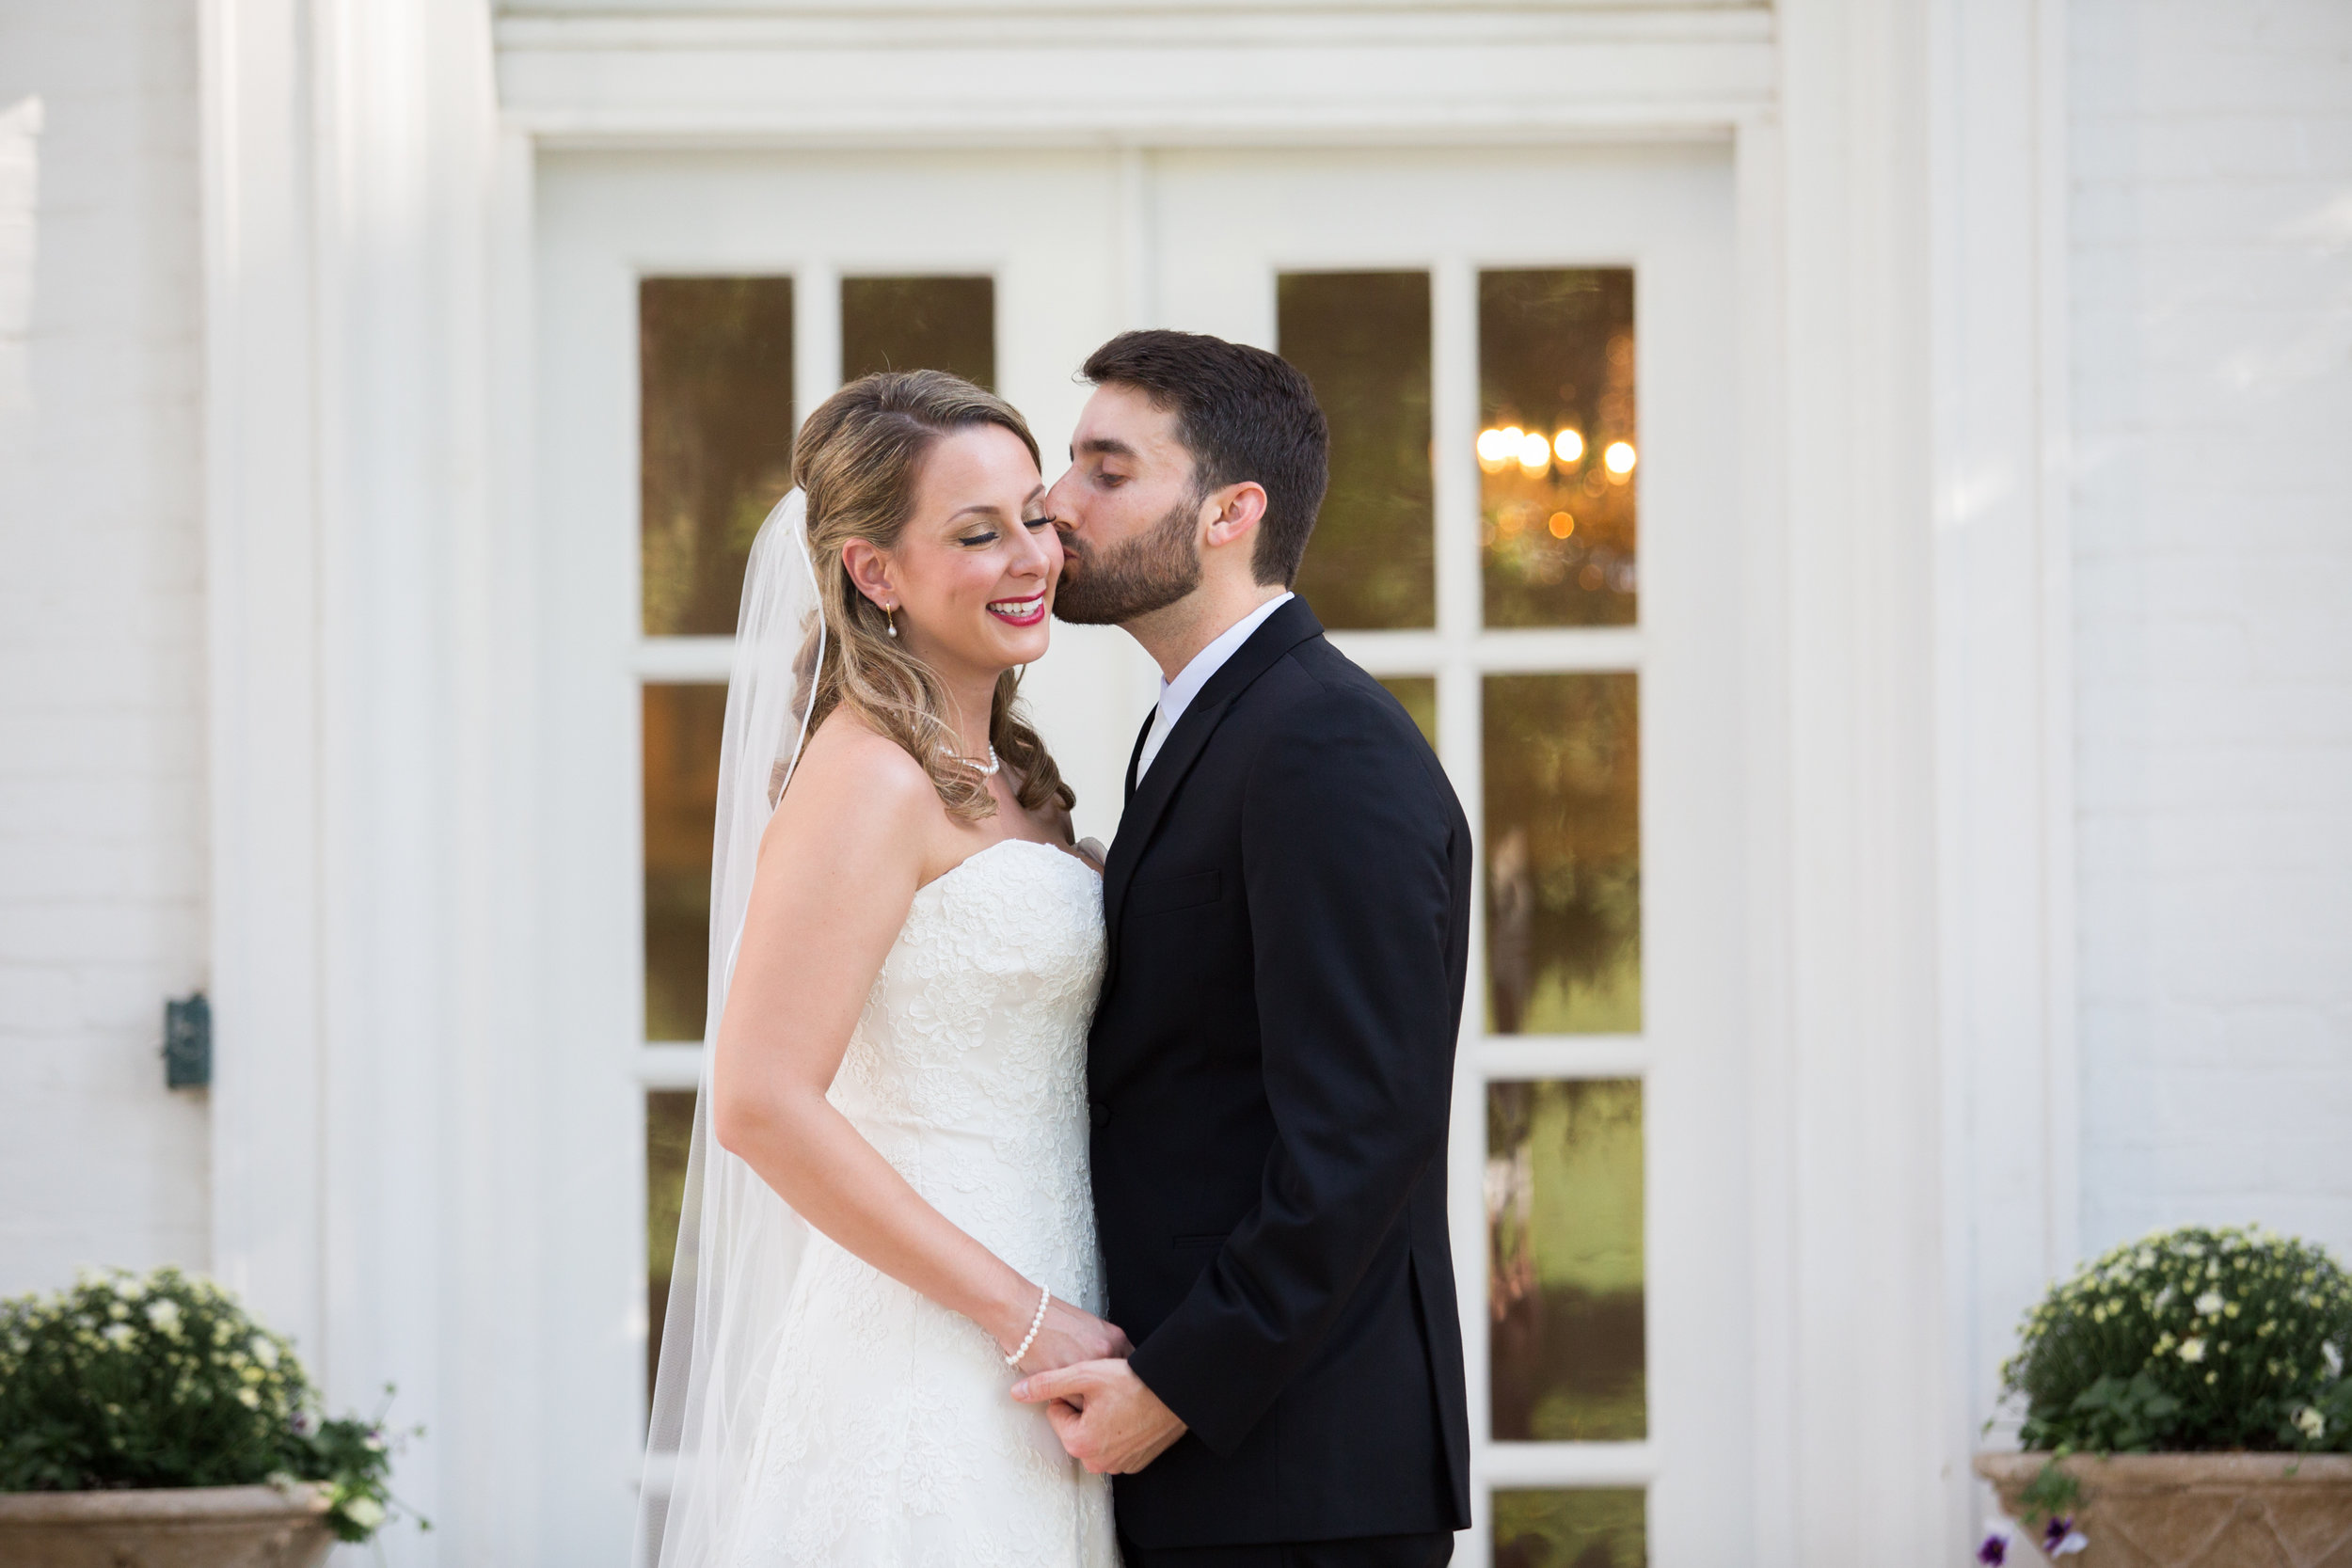 bgp-blog-caroline-chris-wedding-whitehall-estate-bluemont-virginia-44.JPG